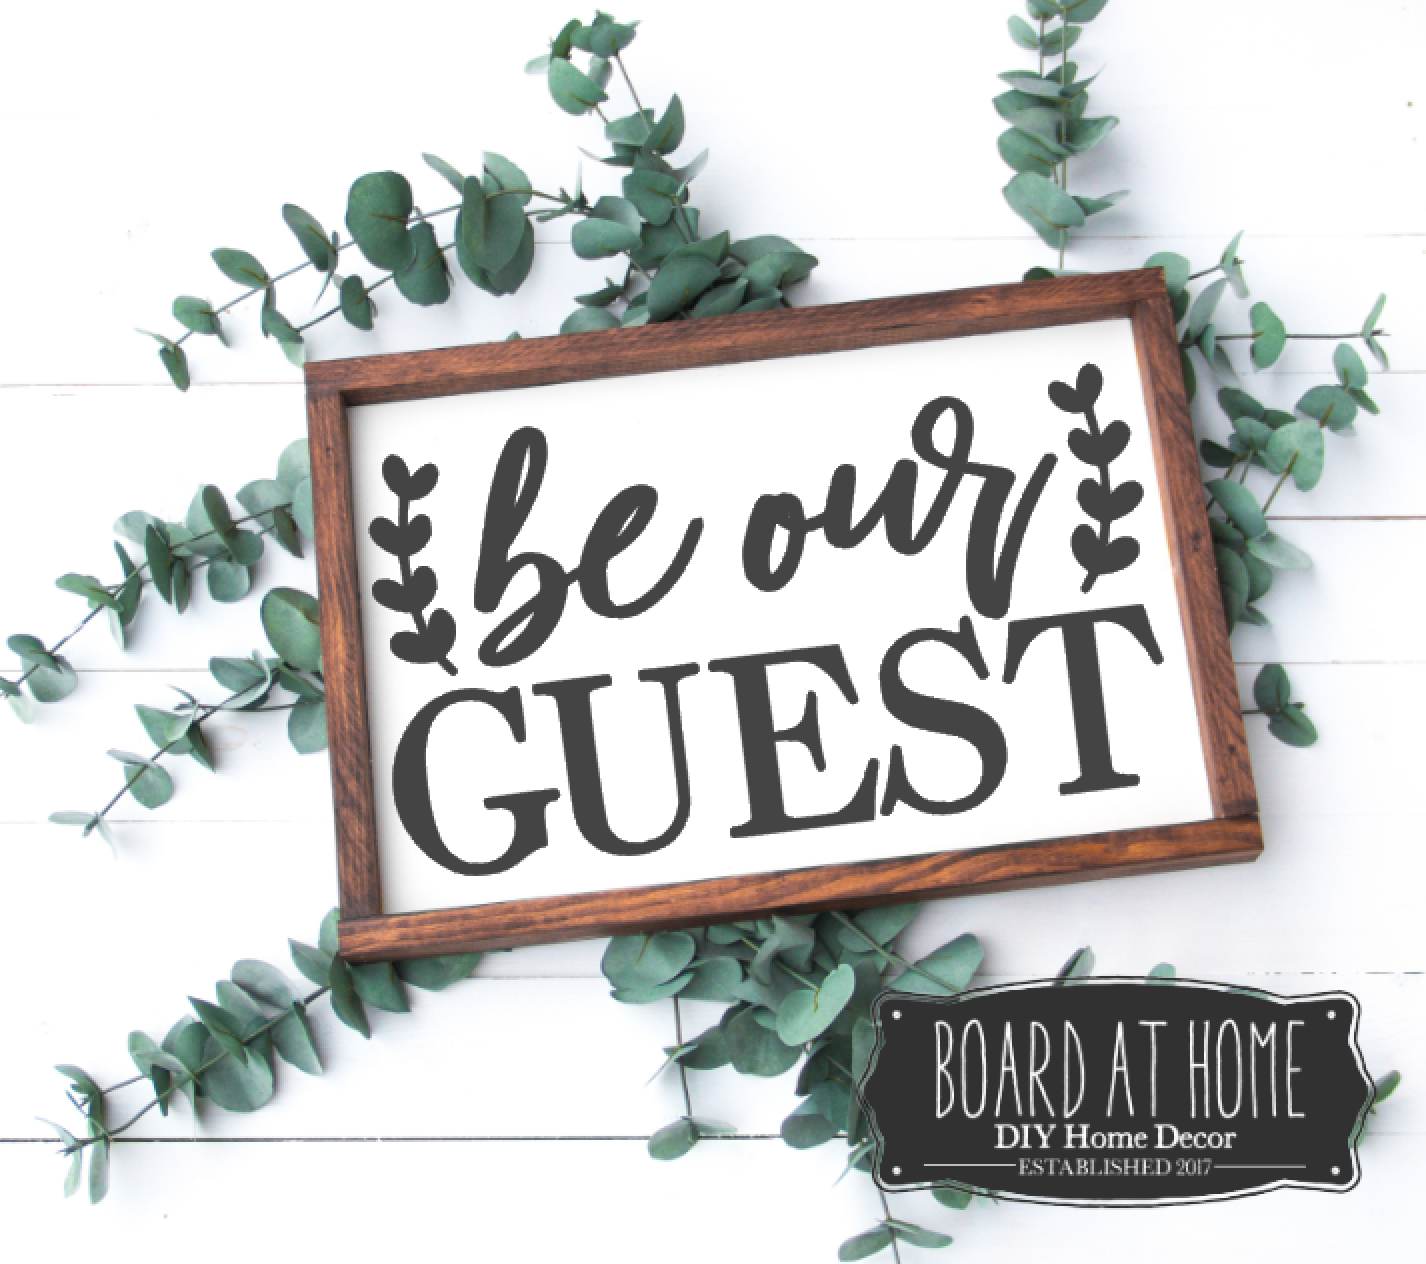 504- be our guest